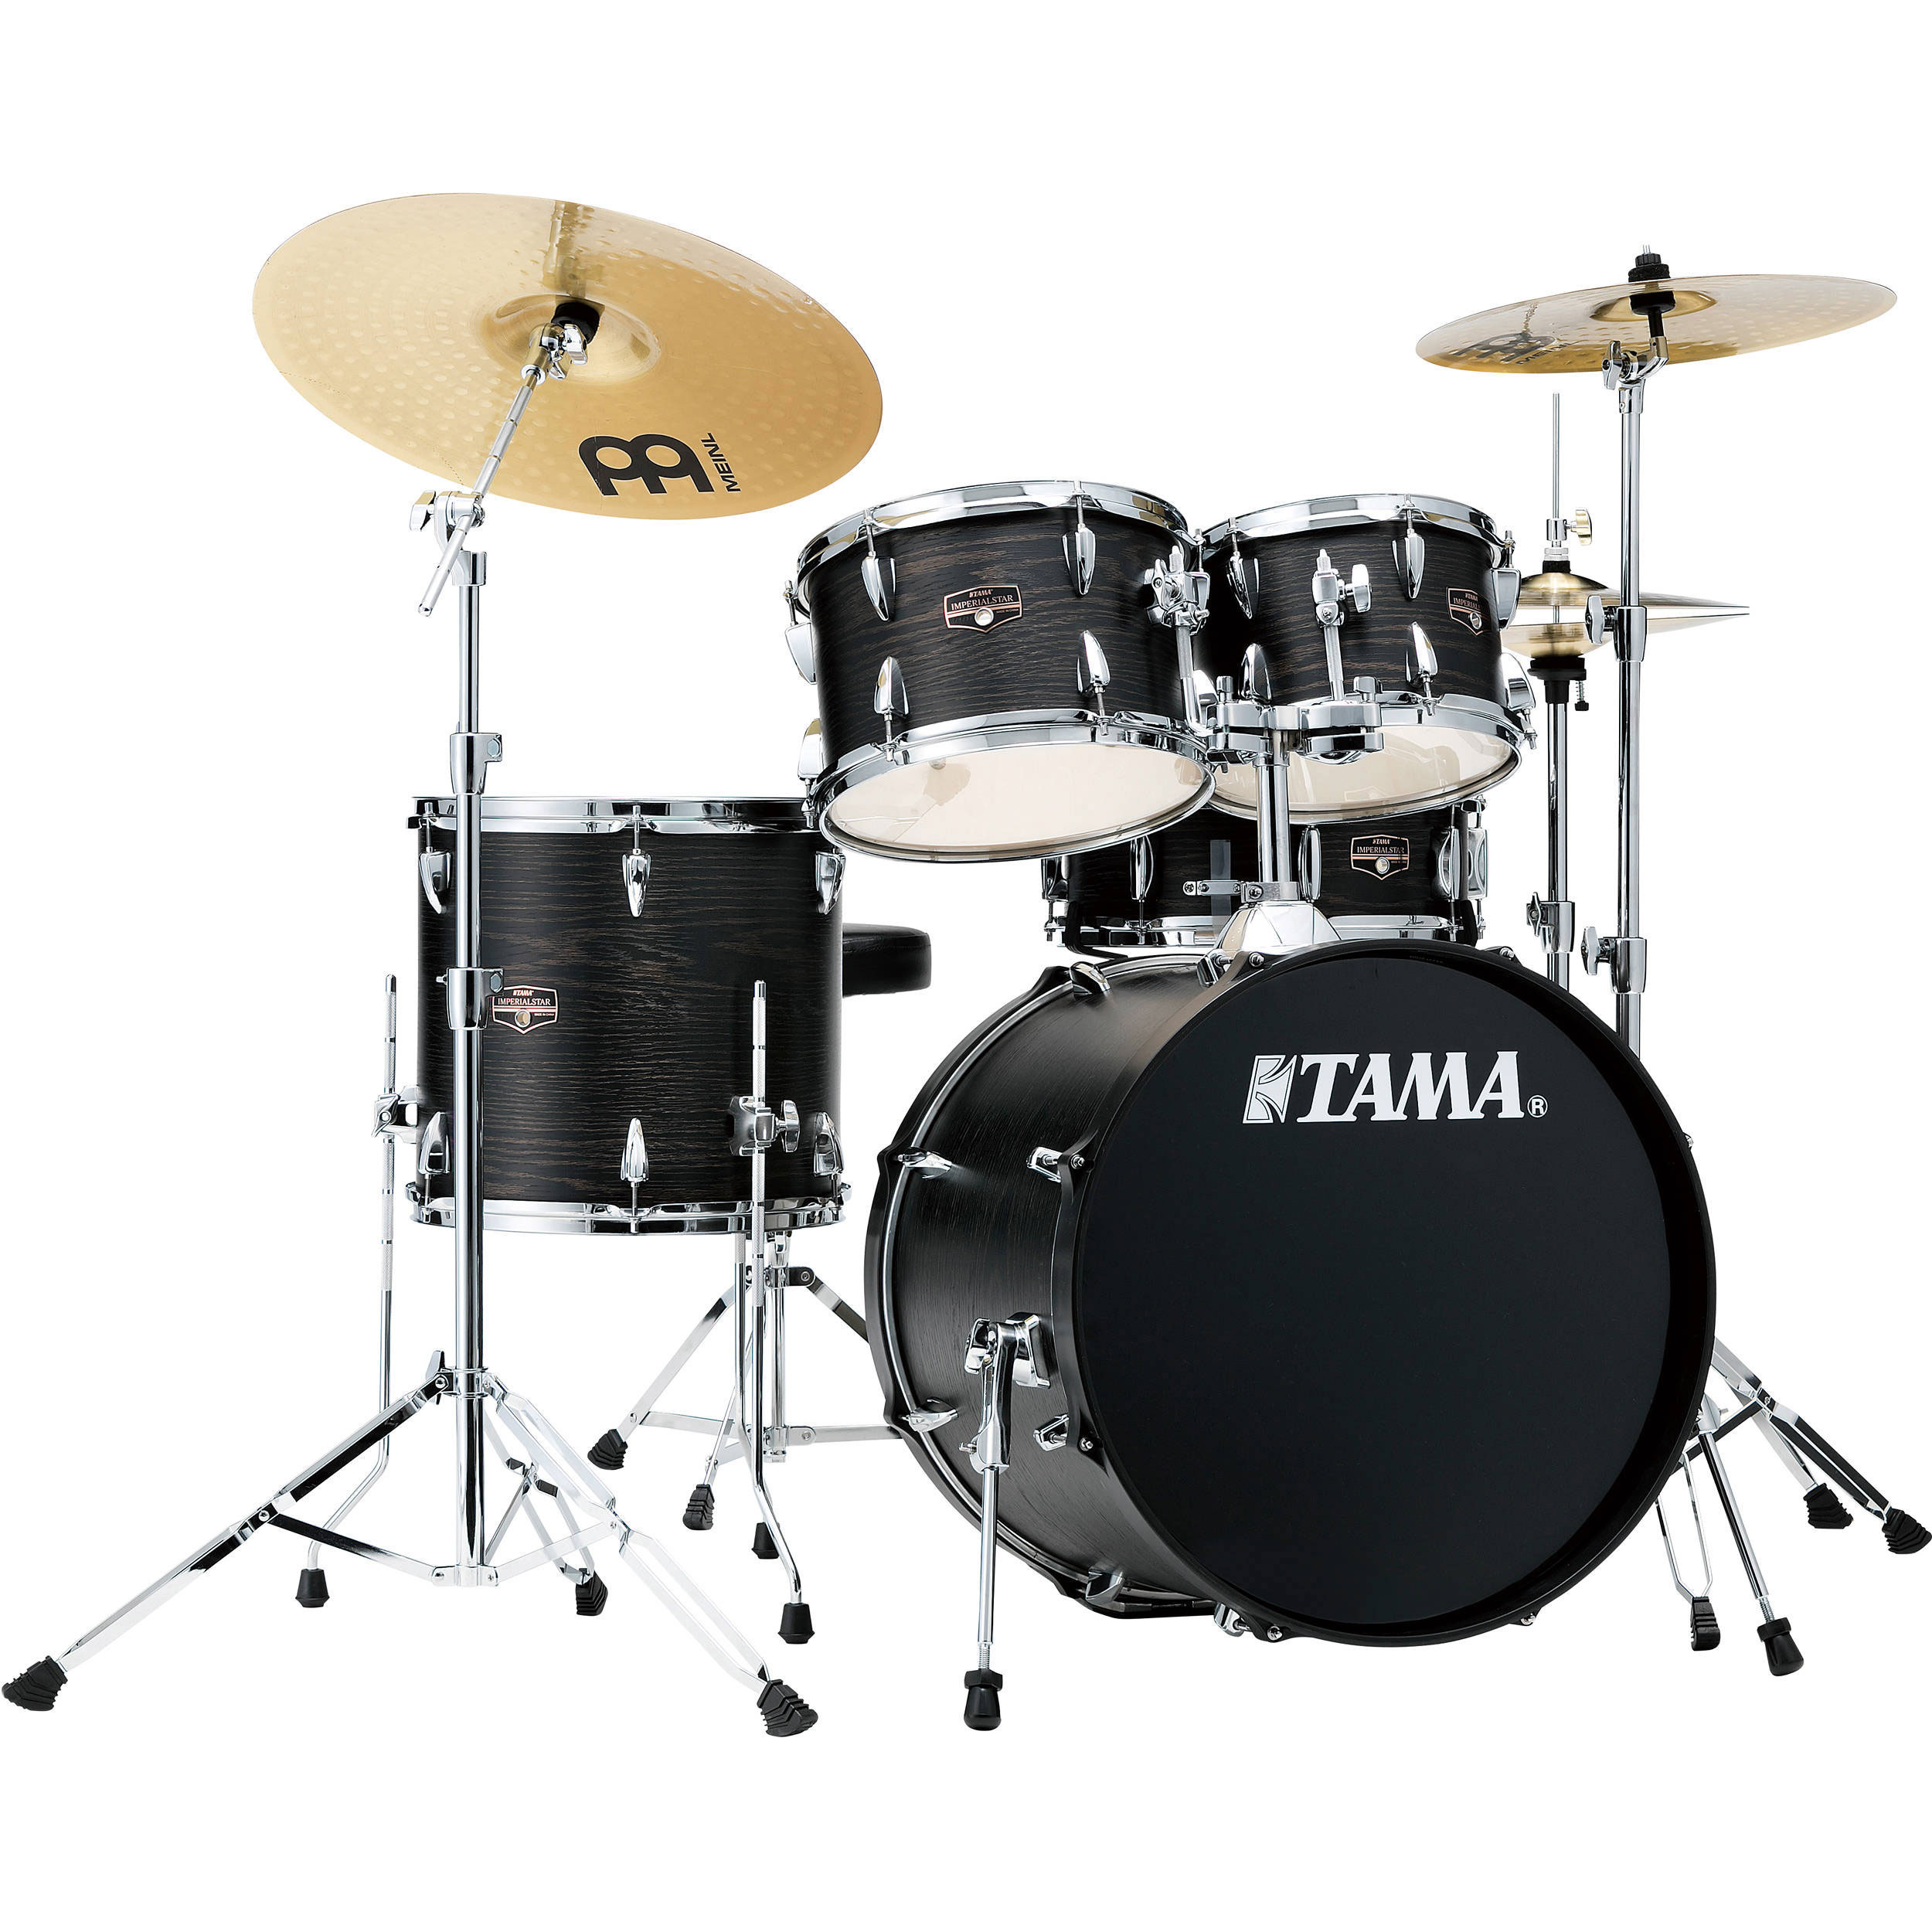 "Tama Imperialstar 5-Piece Drum Set with Hardware and Cymbals (20"" Bass, 10/12/14"" Toms, 14"" Snare)"